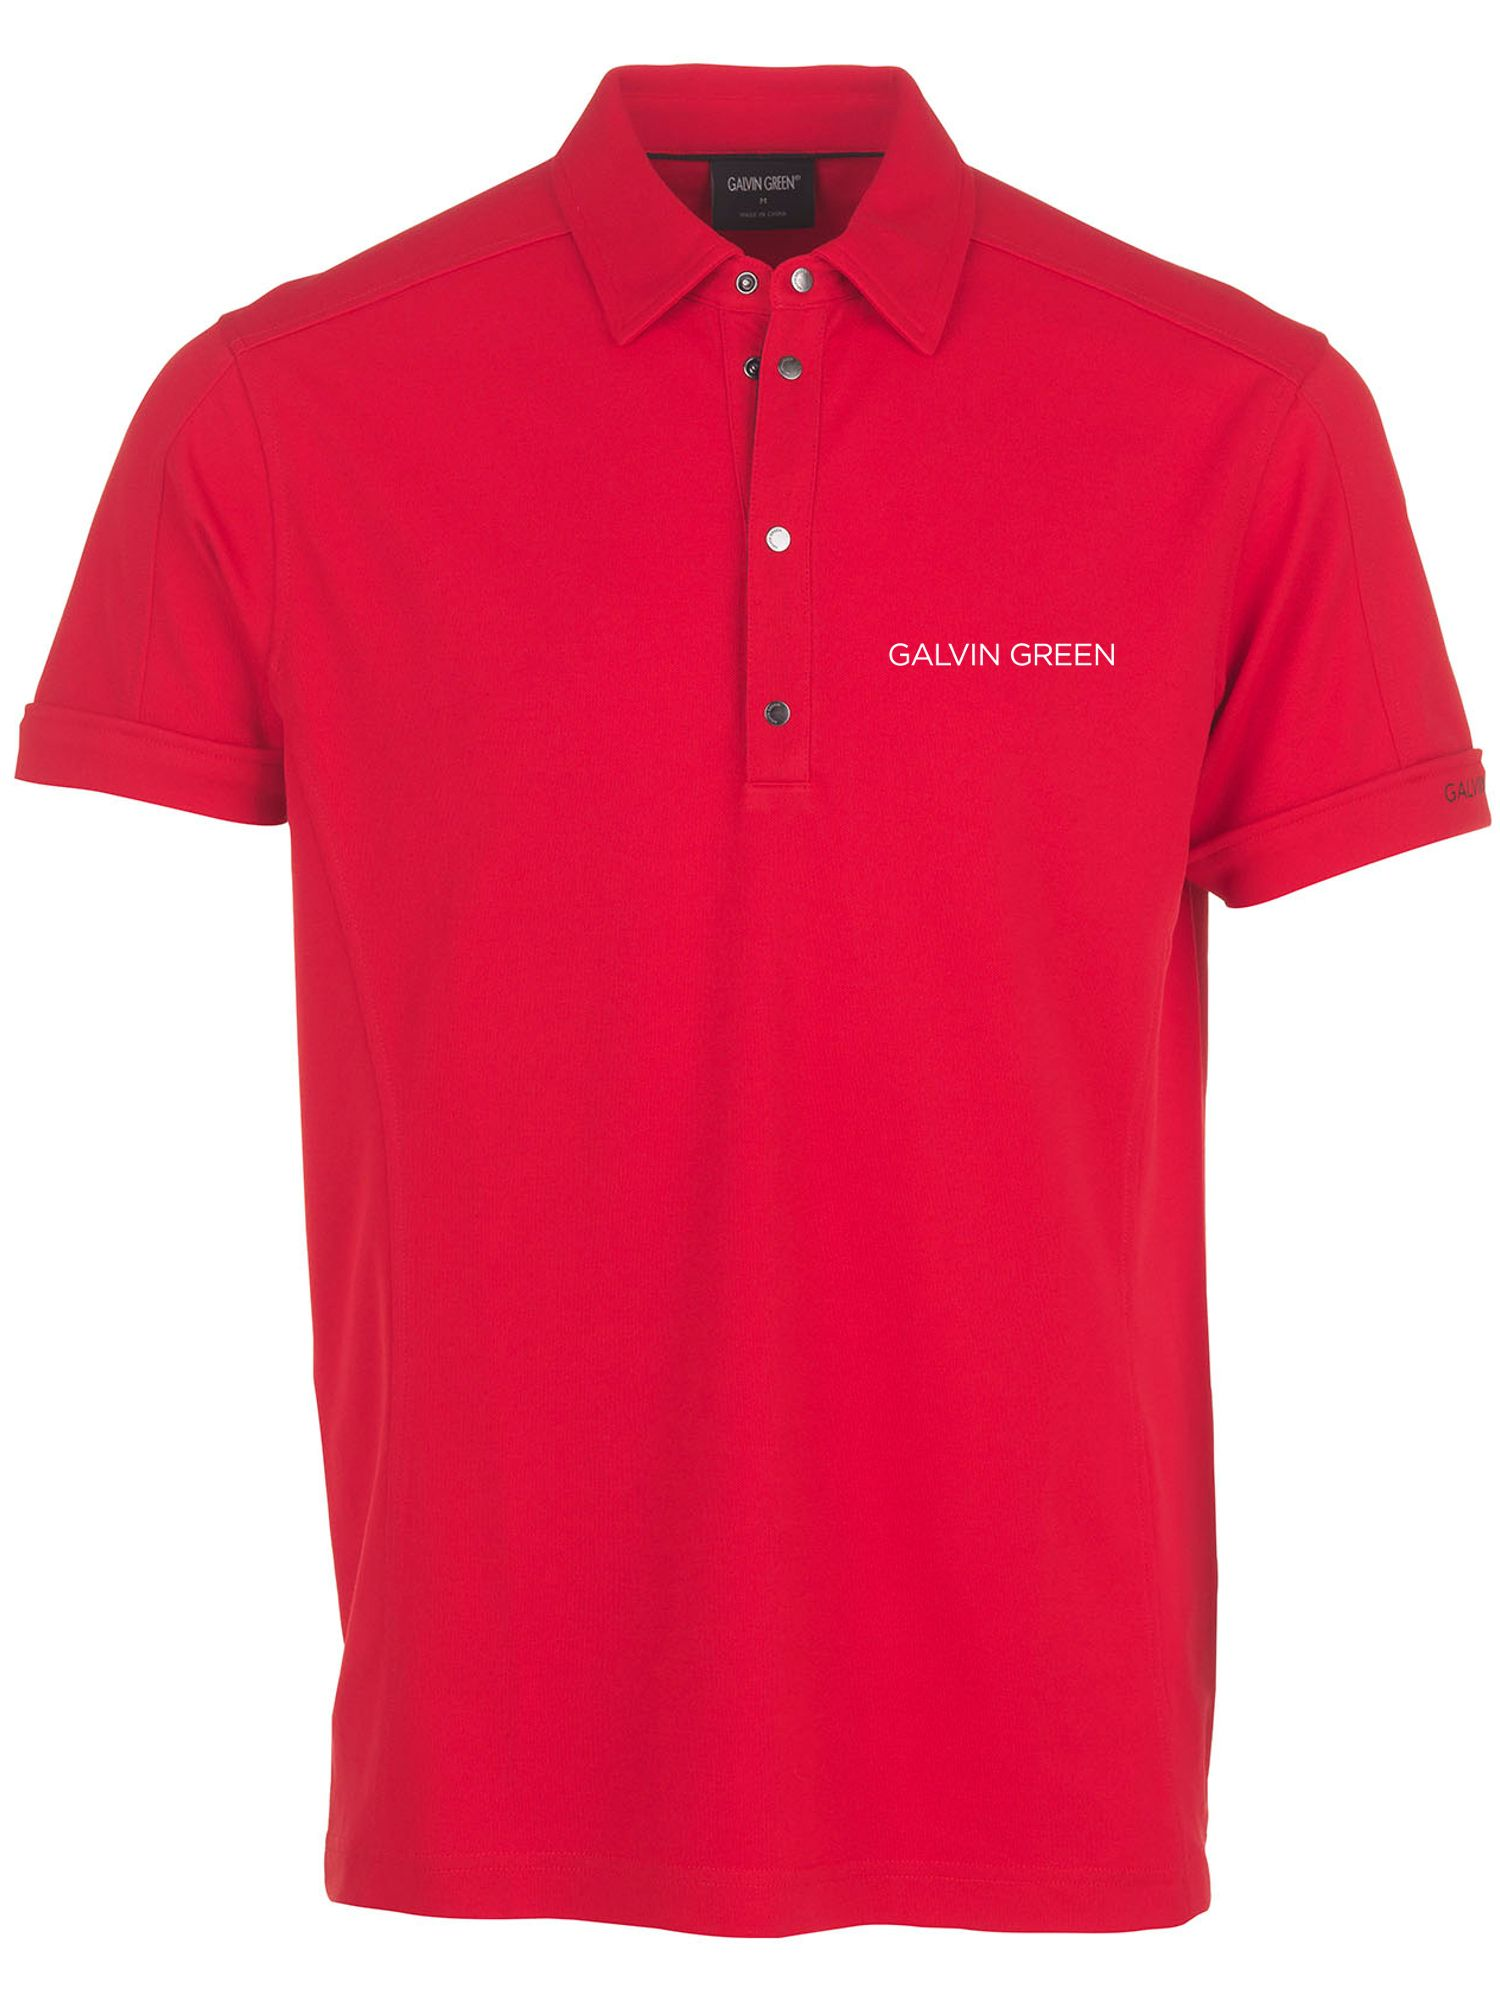 Men's Galvin Green Manley Polo, Red